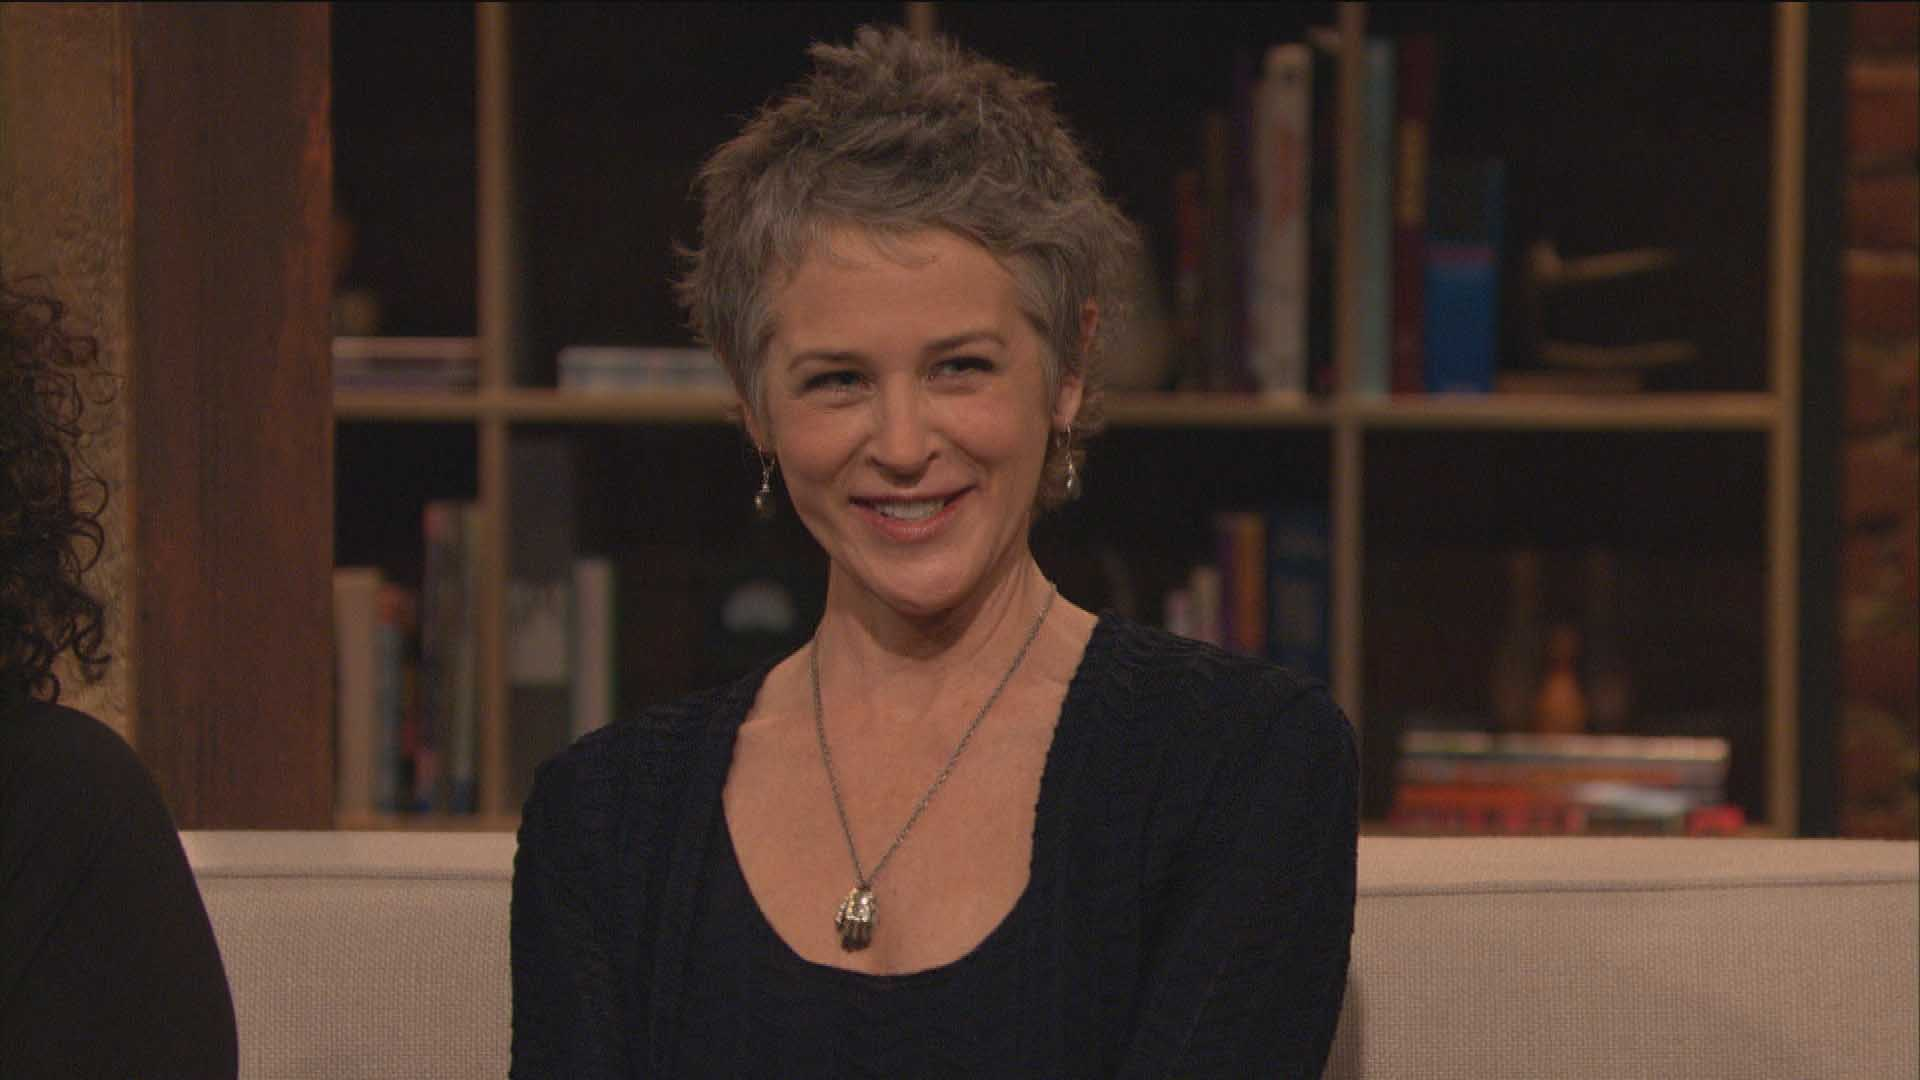 melissa mcbride dawson's creekmelissa mcbride young, melissa mcbride height, melissa mcbride gallery, melissa mcbride gif hunt, melissa mcbride gifs, melissa mcbride insta, melissa mcbride height weight, melissa mcbride the mist, melissa mcbride interview, melissa mcbride instagram, melissa mcbride and norman reedus, melissa mcbride private life, melissa mcbride facebook, melissa mcbride, melissa mcbride gay, melissa mcbride dawson's creek, melissa mcbride walking dead, melissa mcbride long hair, melissa mcbride wiki, melissa mcbride haircut